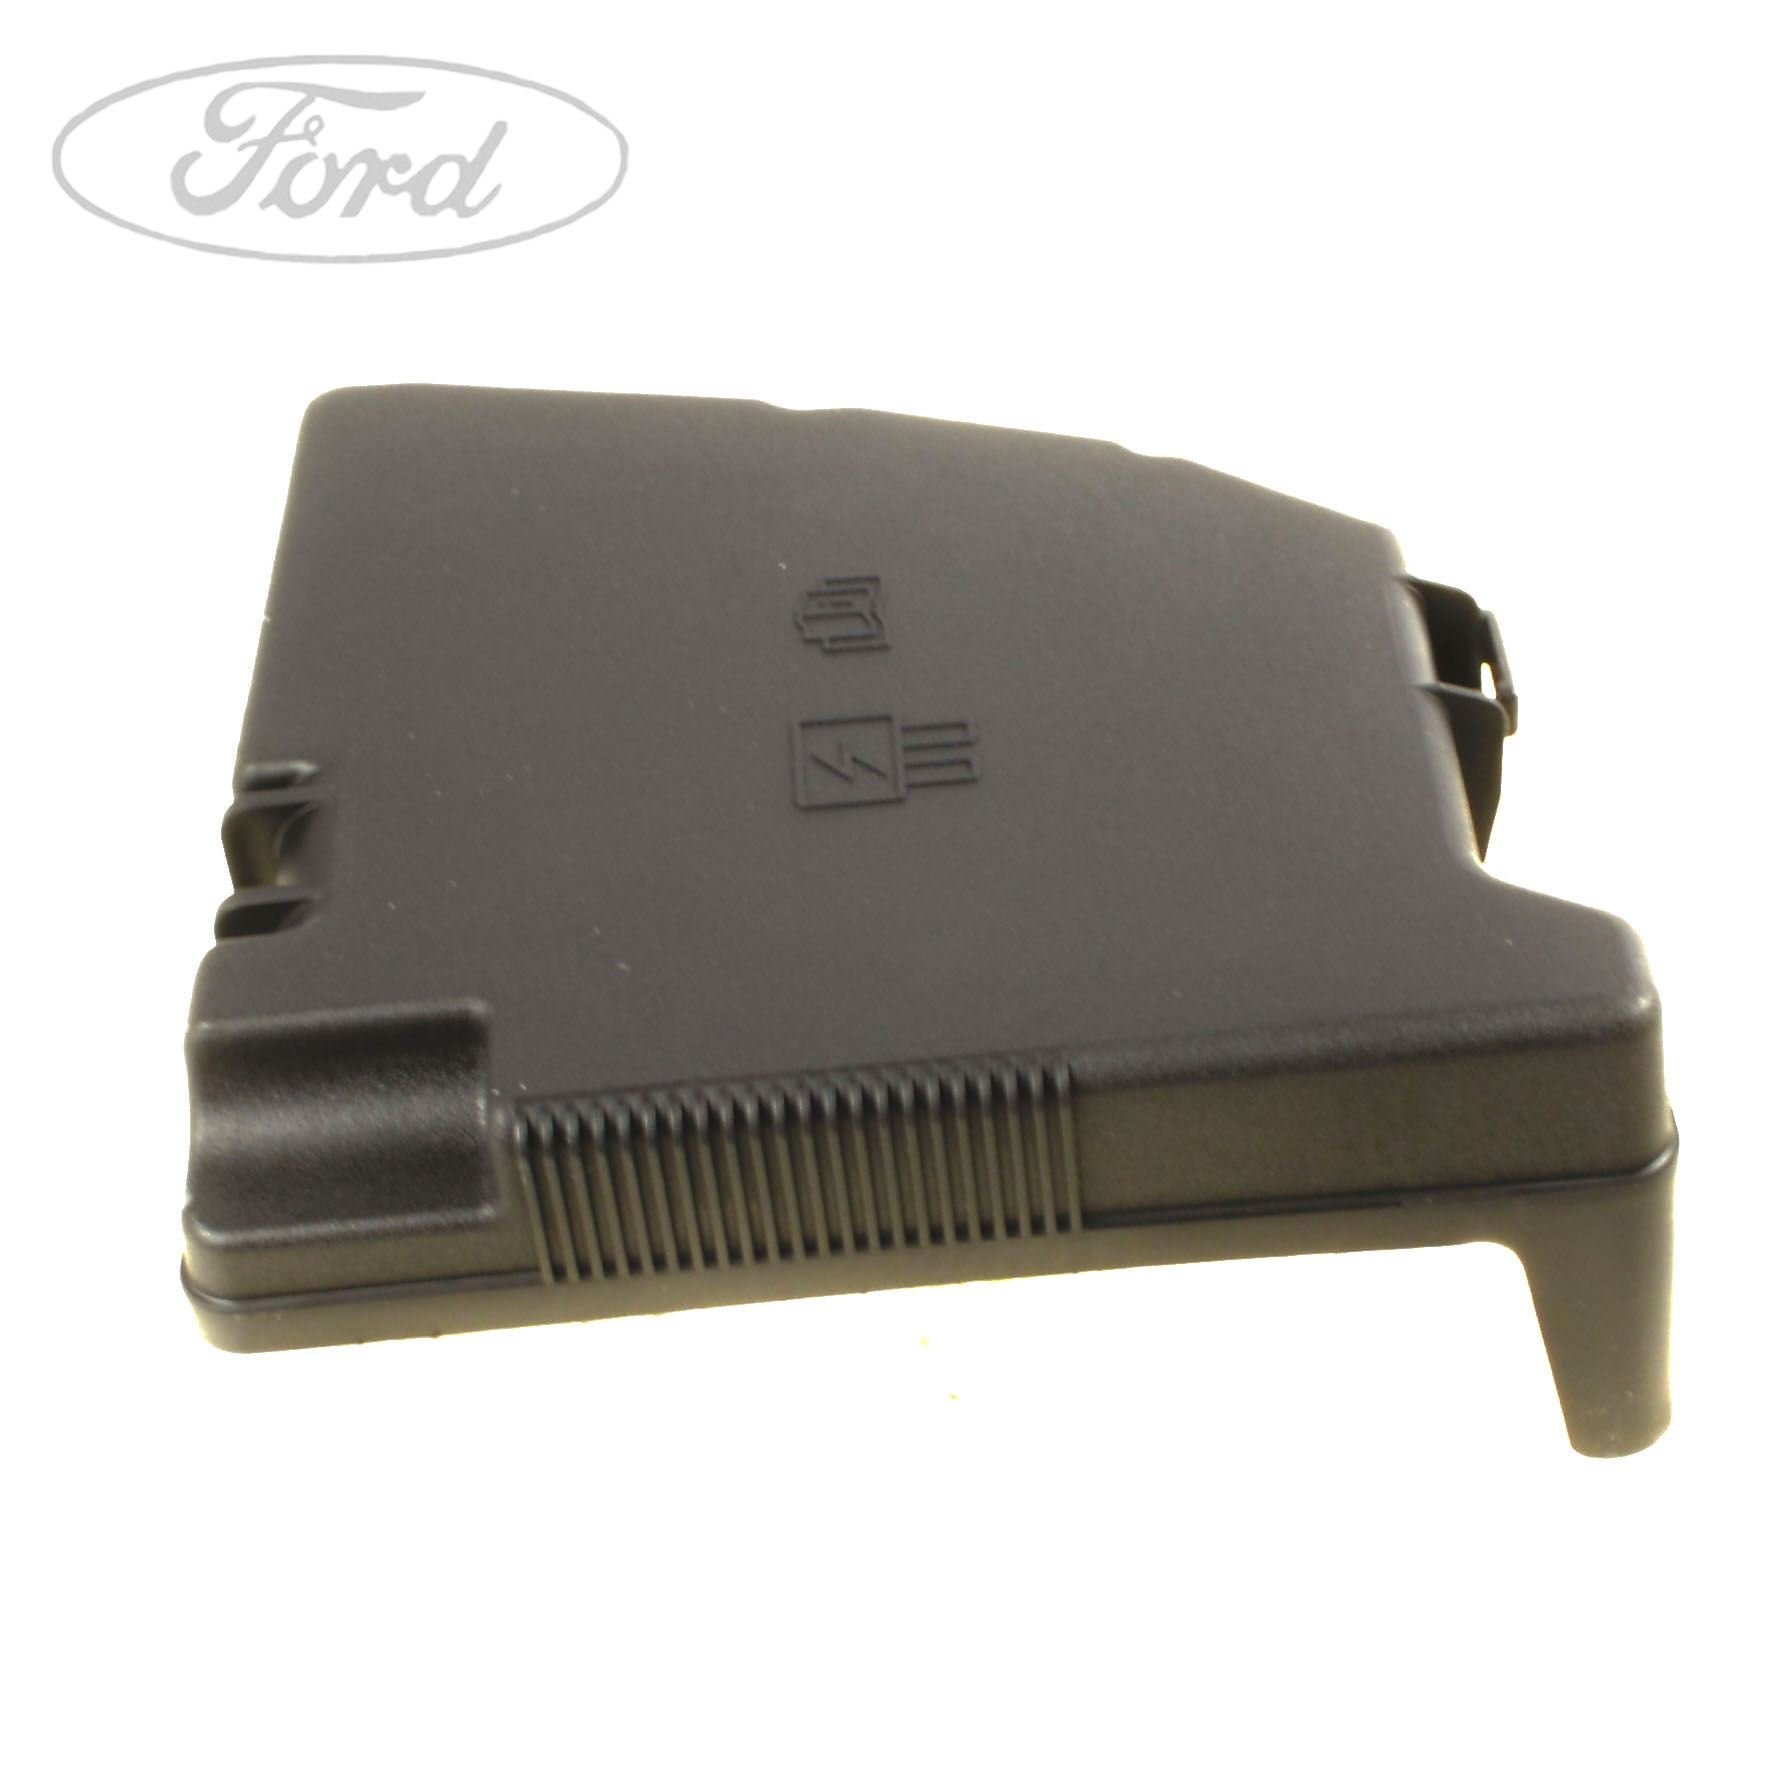 Genuine Ford Fiesta Mk7 Fuse Box Cover 1515045 Ebay 2011 Buick